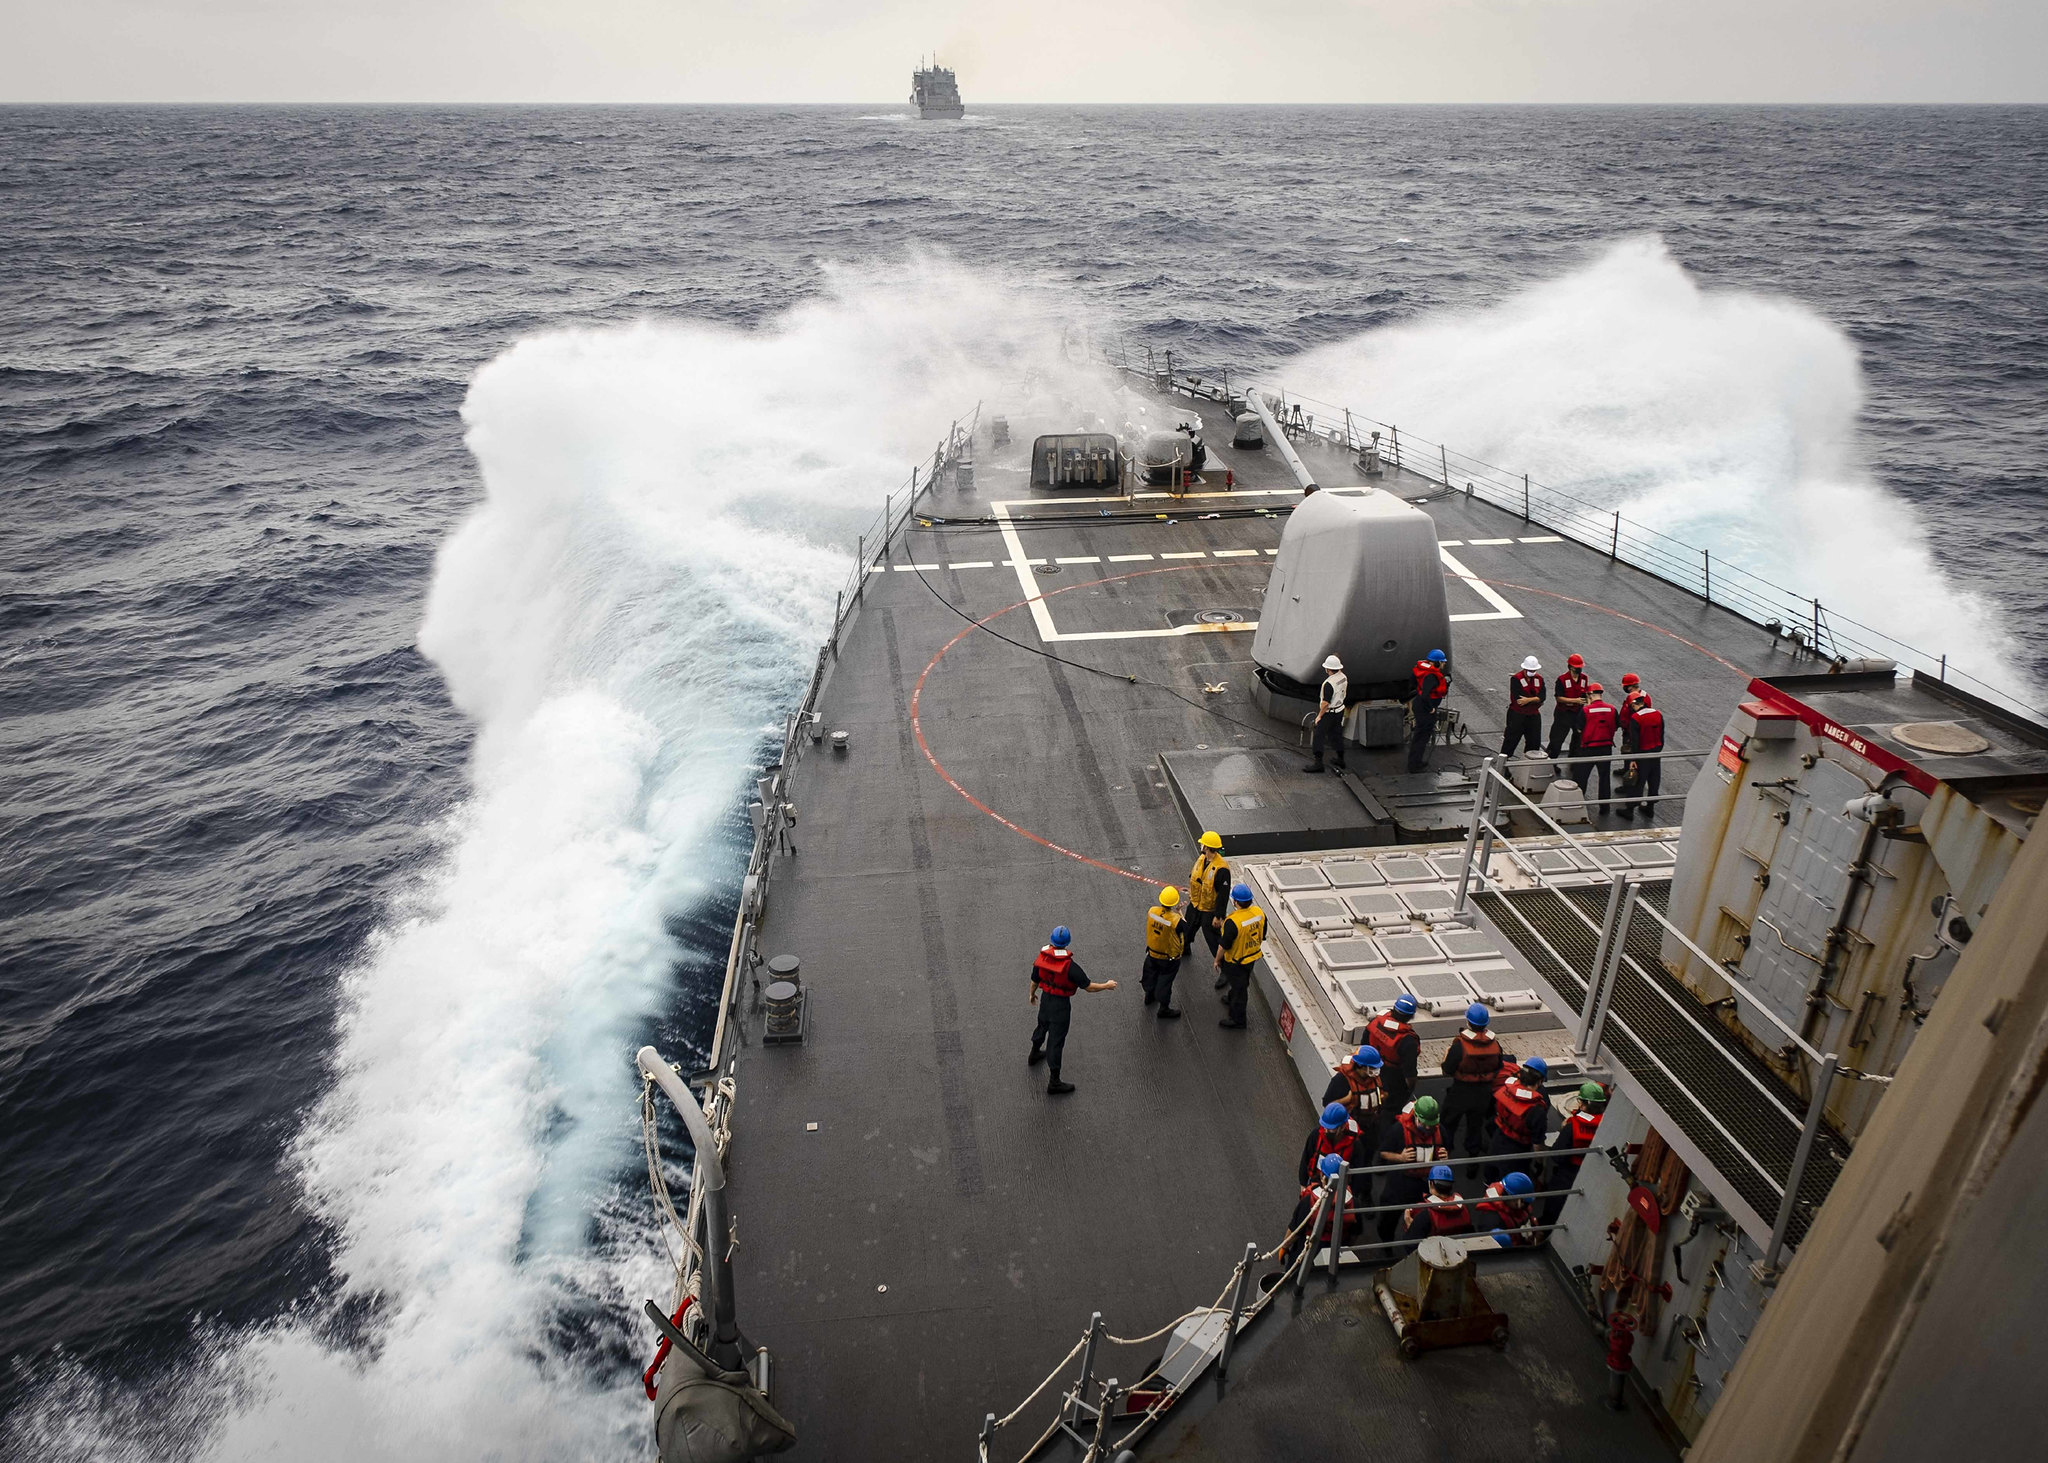 Sailors observe from the foc's'le as the Arleigh Burke-class guided-missile destroyer USS John S. McCain (DDG 56) makes its approach towards the dry cargo and ammunition ship USNS Alan Shepard (T-AKE 3) prior to a replenishment-at-sea on Oct. 22, 2020, in the South China Sea. (MC2 Markus Castaneda/Navy)